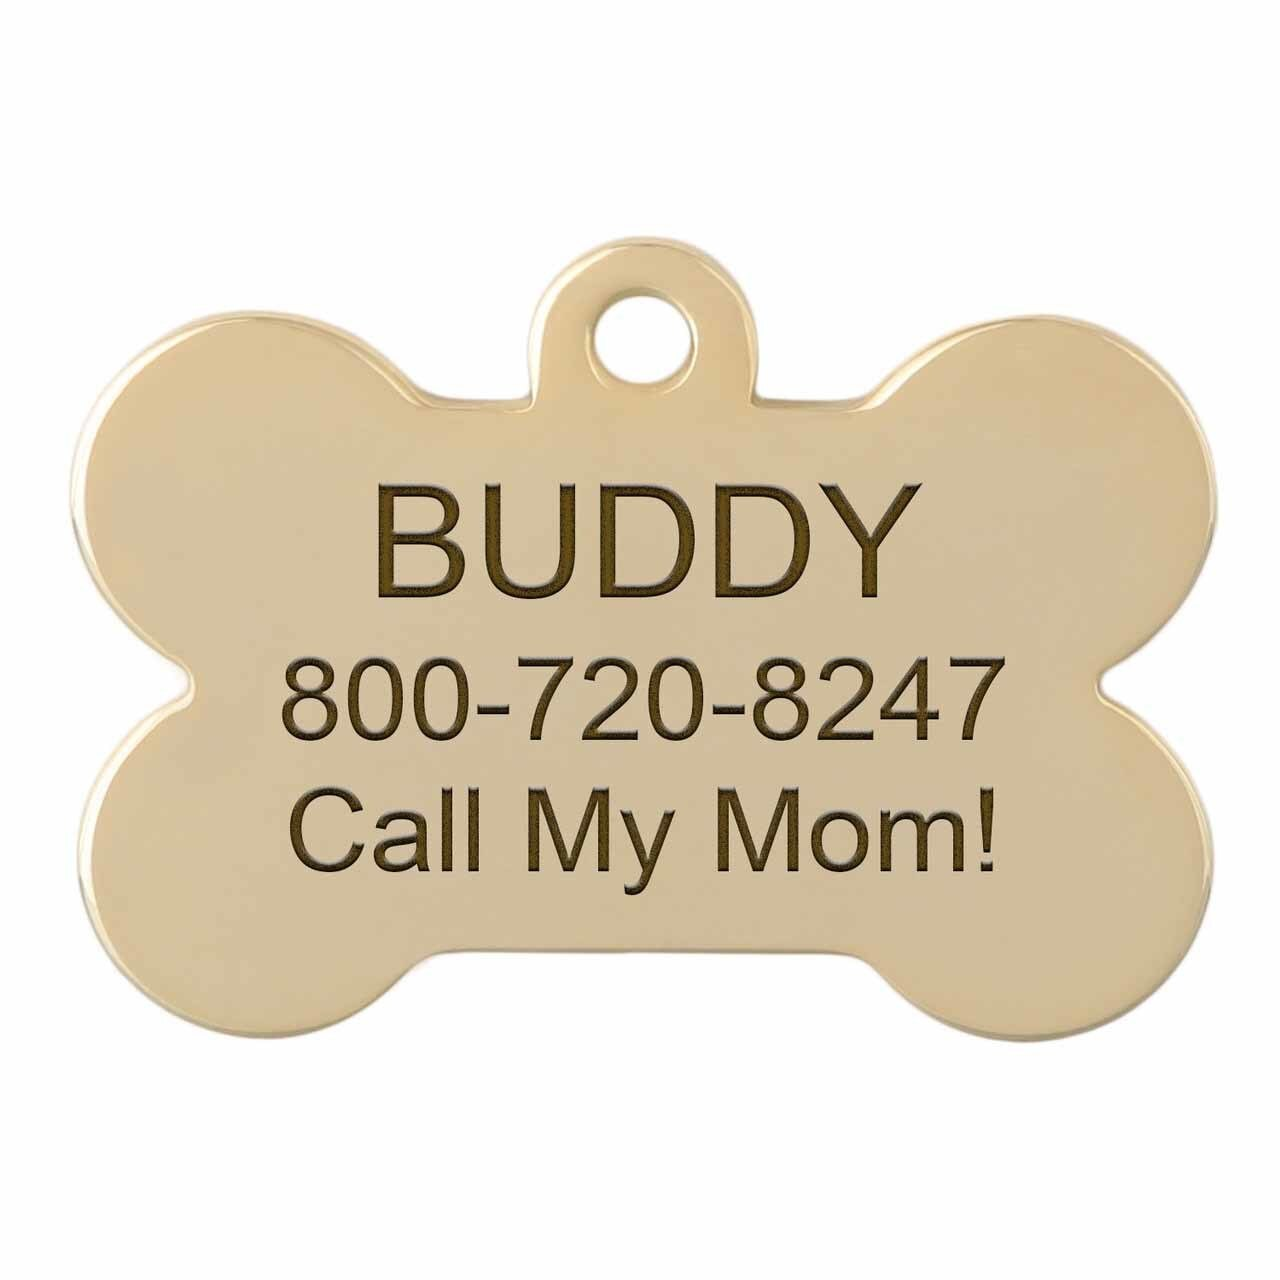 dogIDs Signature Fancy Suit and Tie Dog ID Tags Engraved Bone Gold